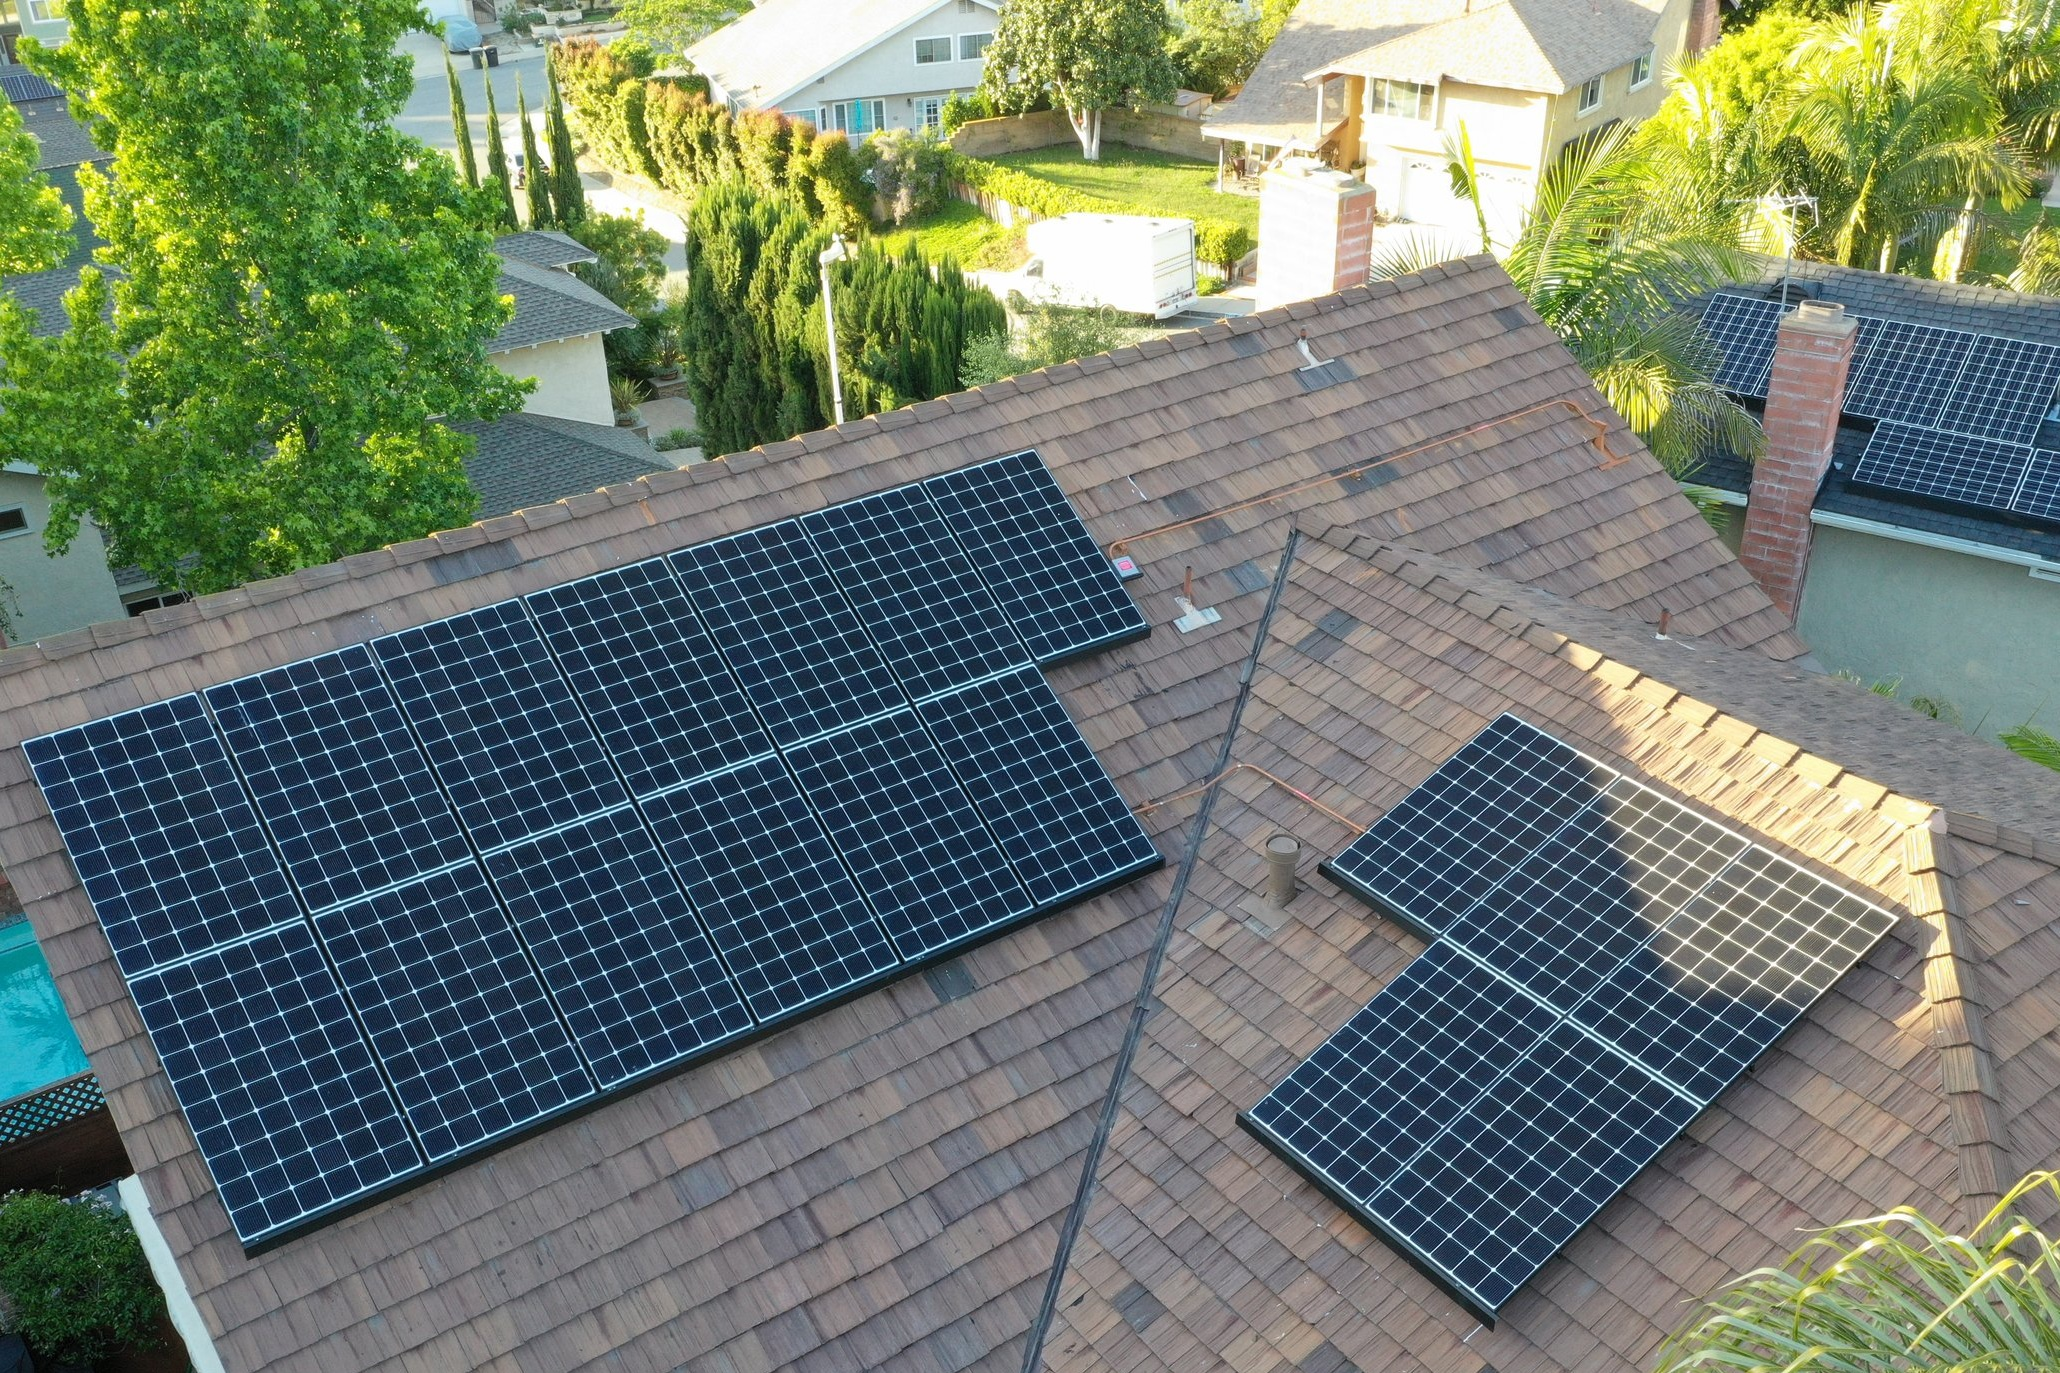 LAGUNA HILLS, CA - 17 high efficiency PV modules total to 6.0 kWDC located in Laguna Hills. This system was commissioned in 2019 and is expected to save the Homeowner almost $100,000 in electricity bills over the next 25 years.